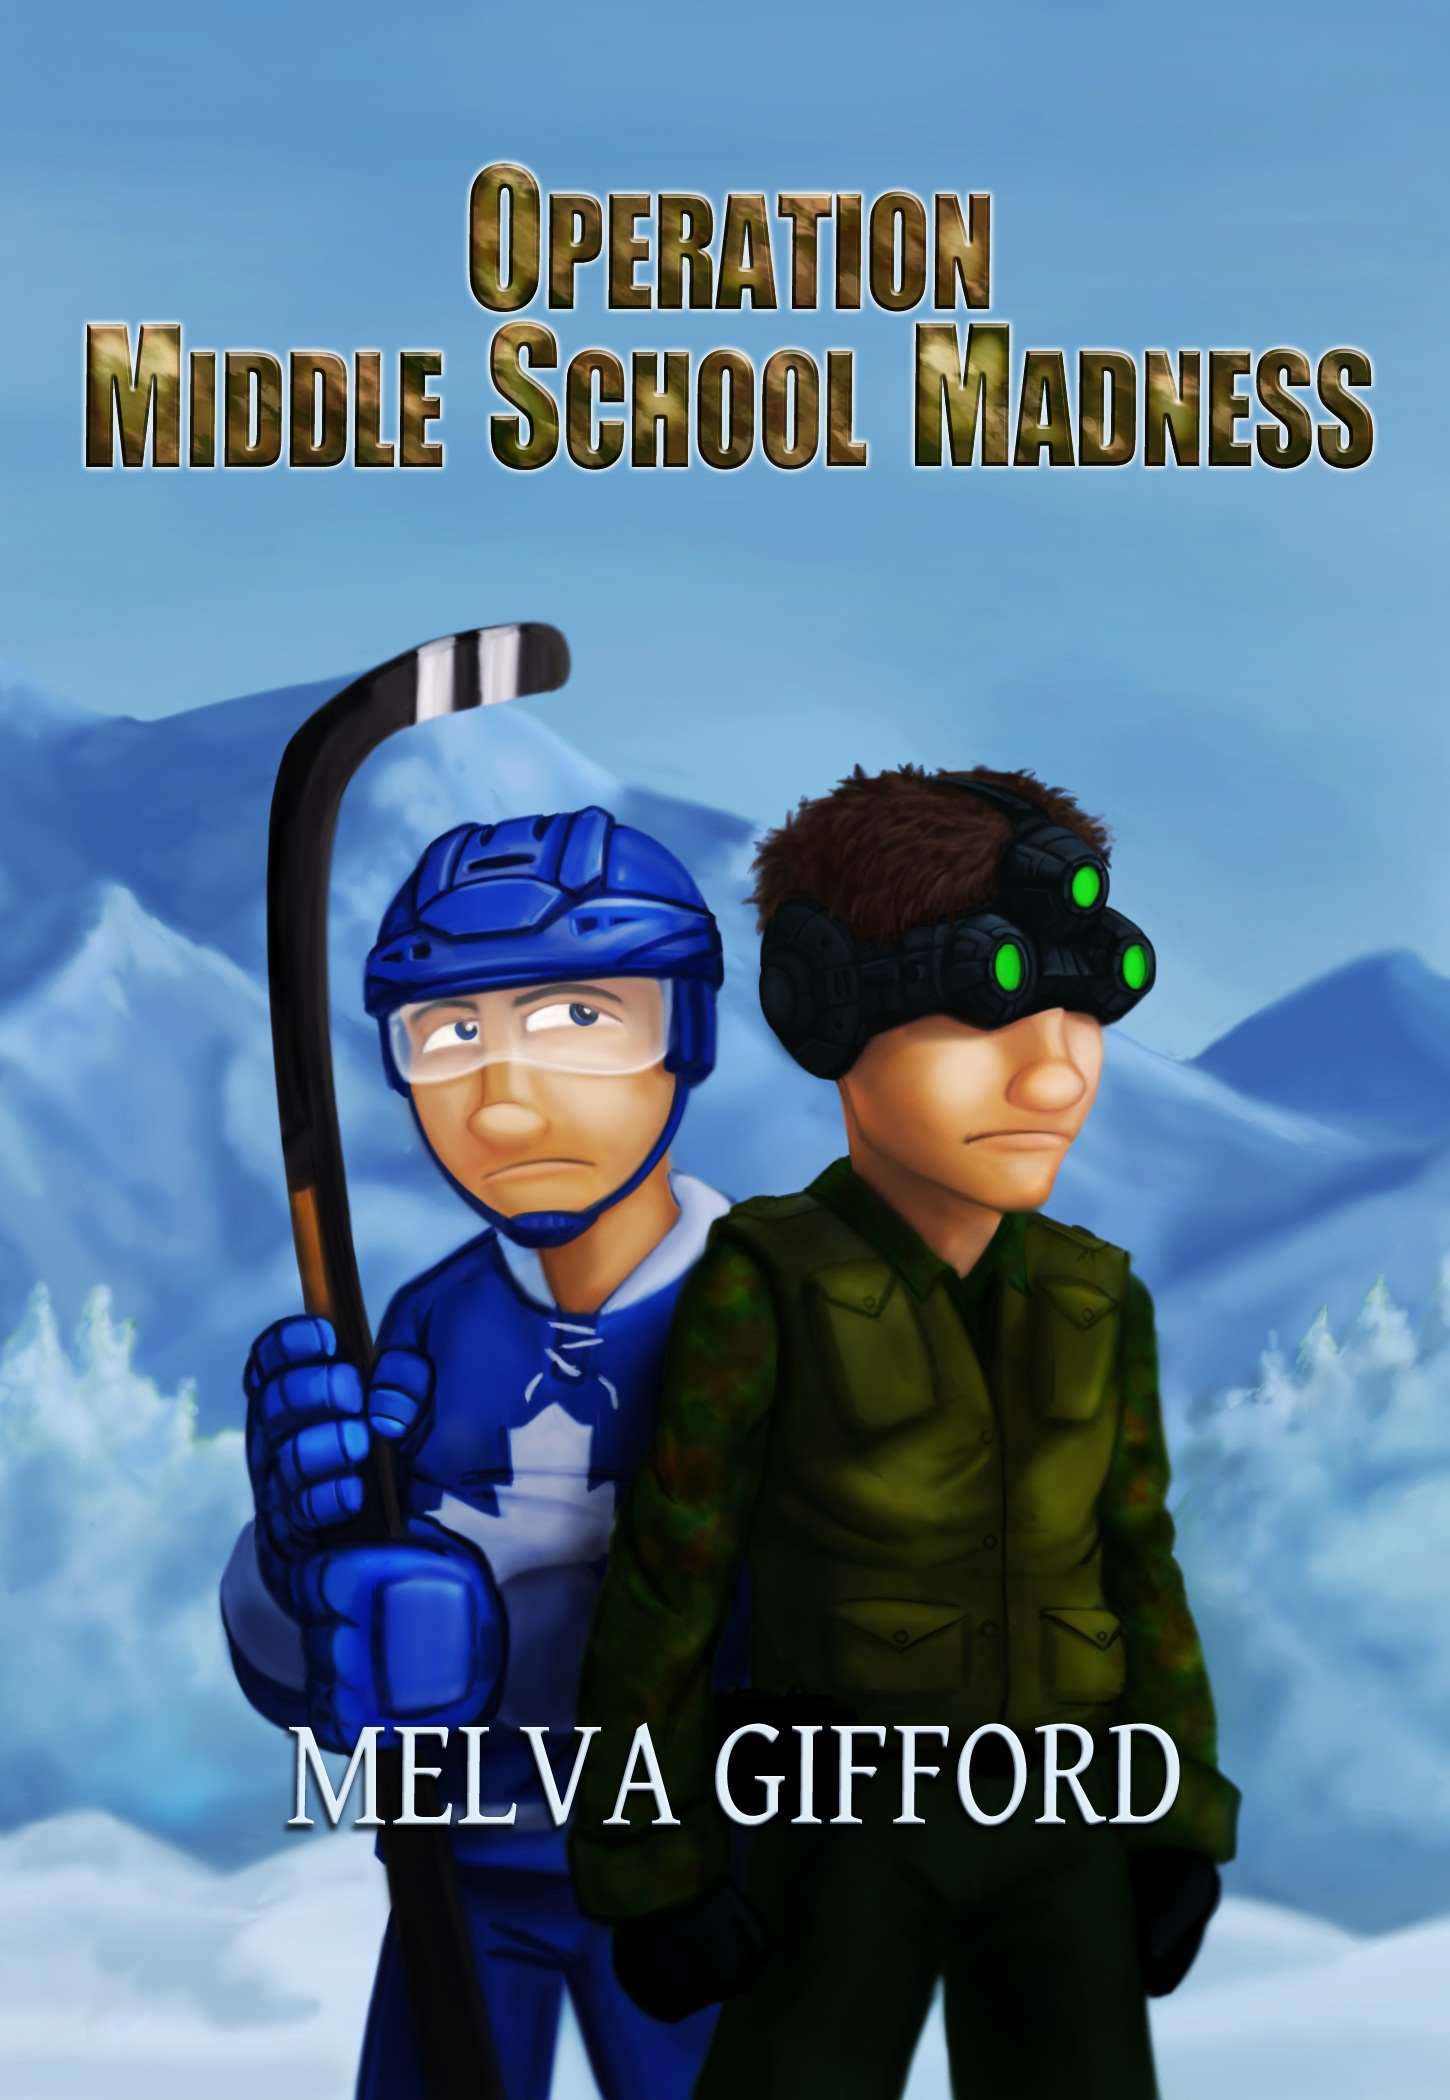 Opertaion Middle School Madness